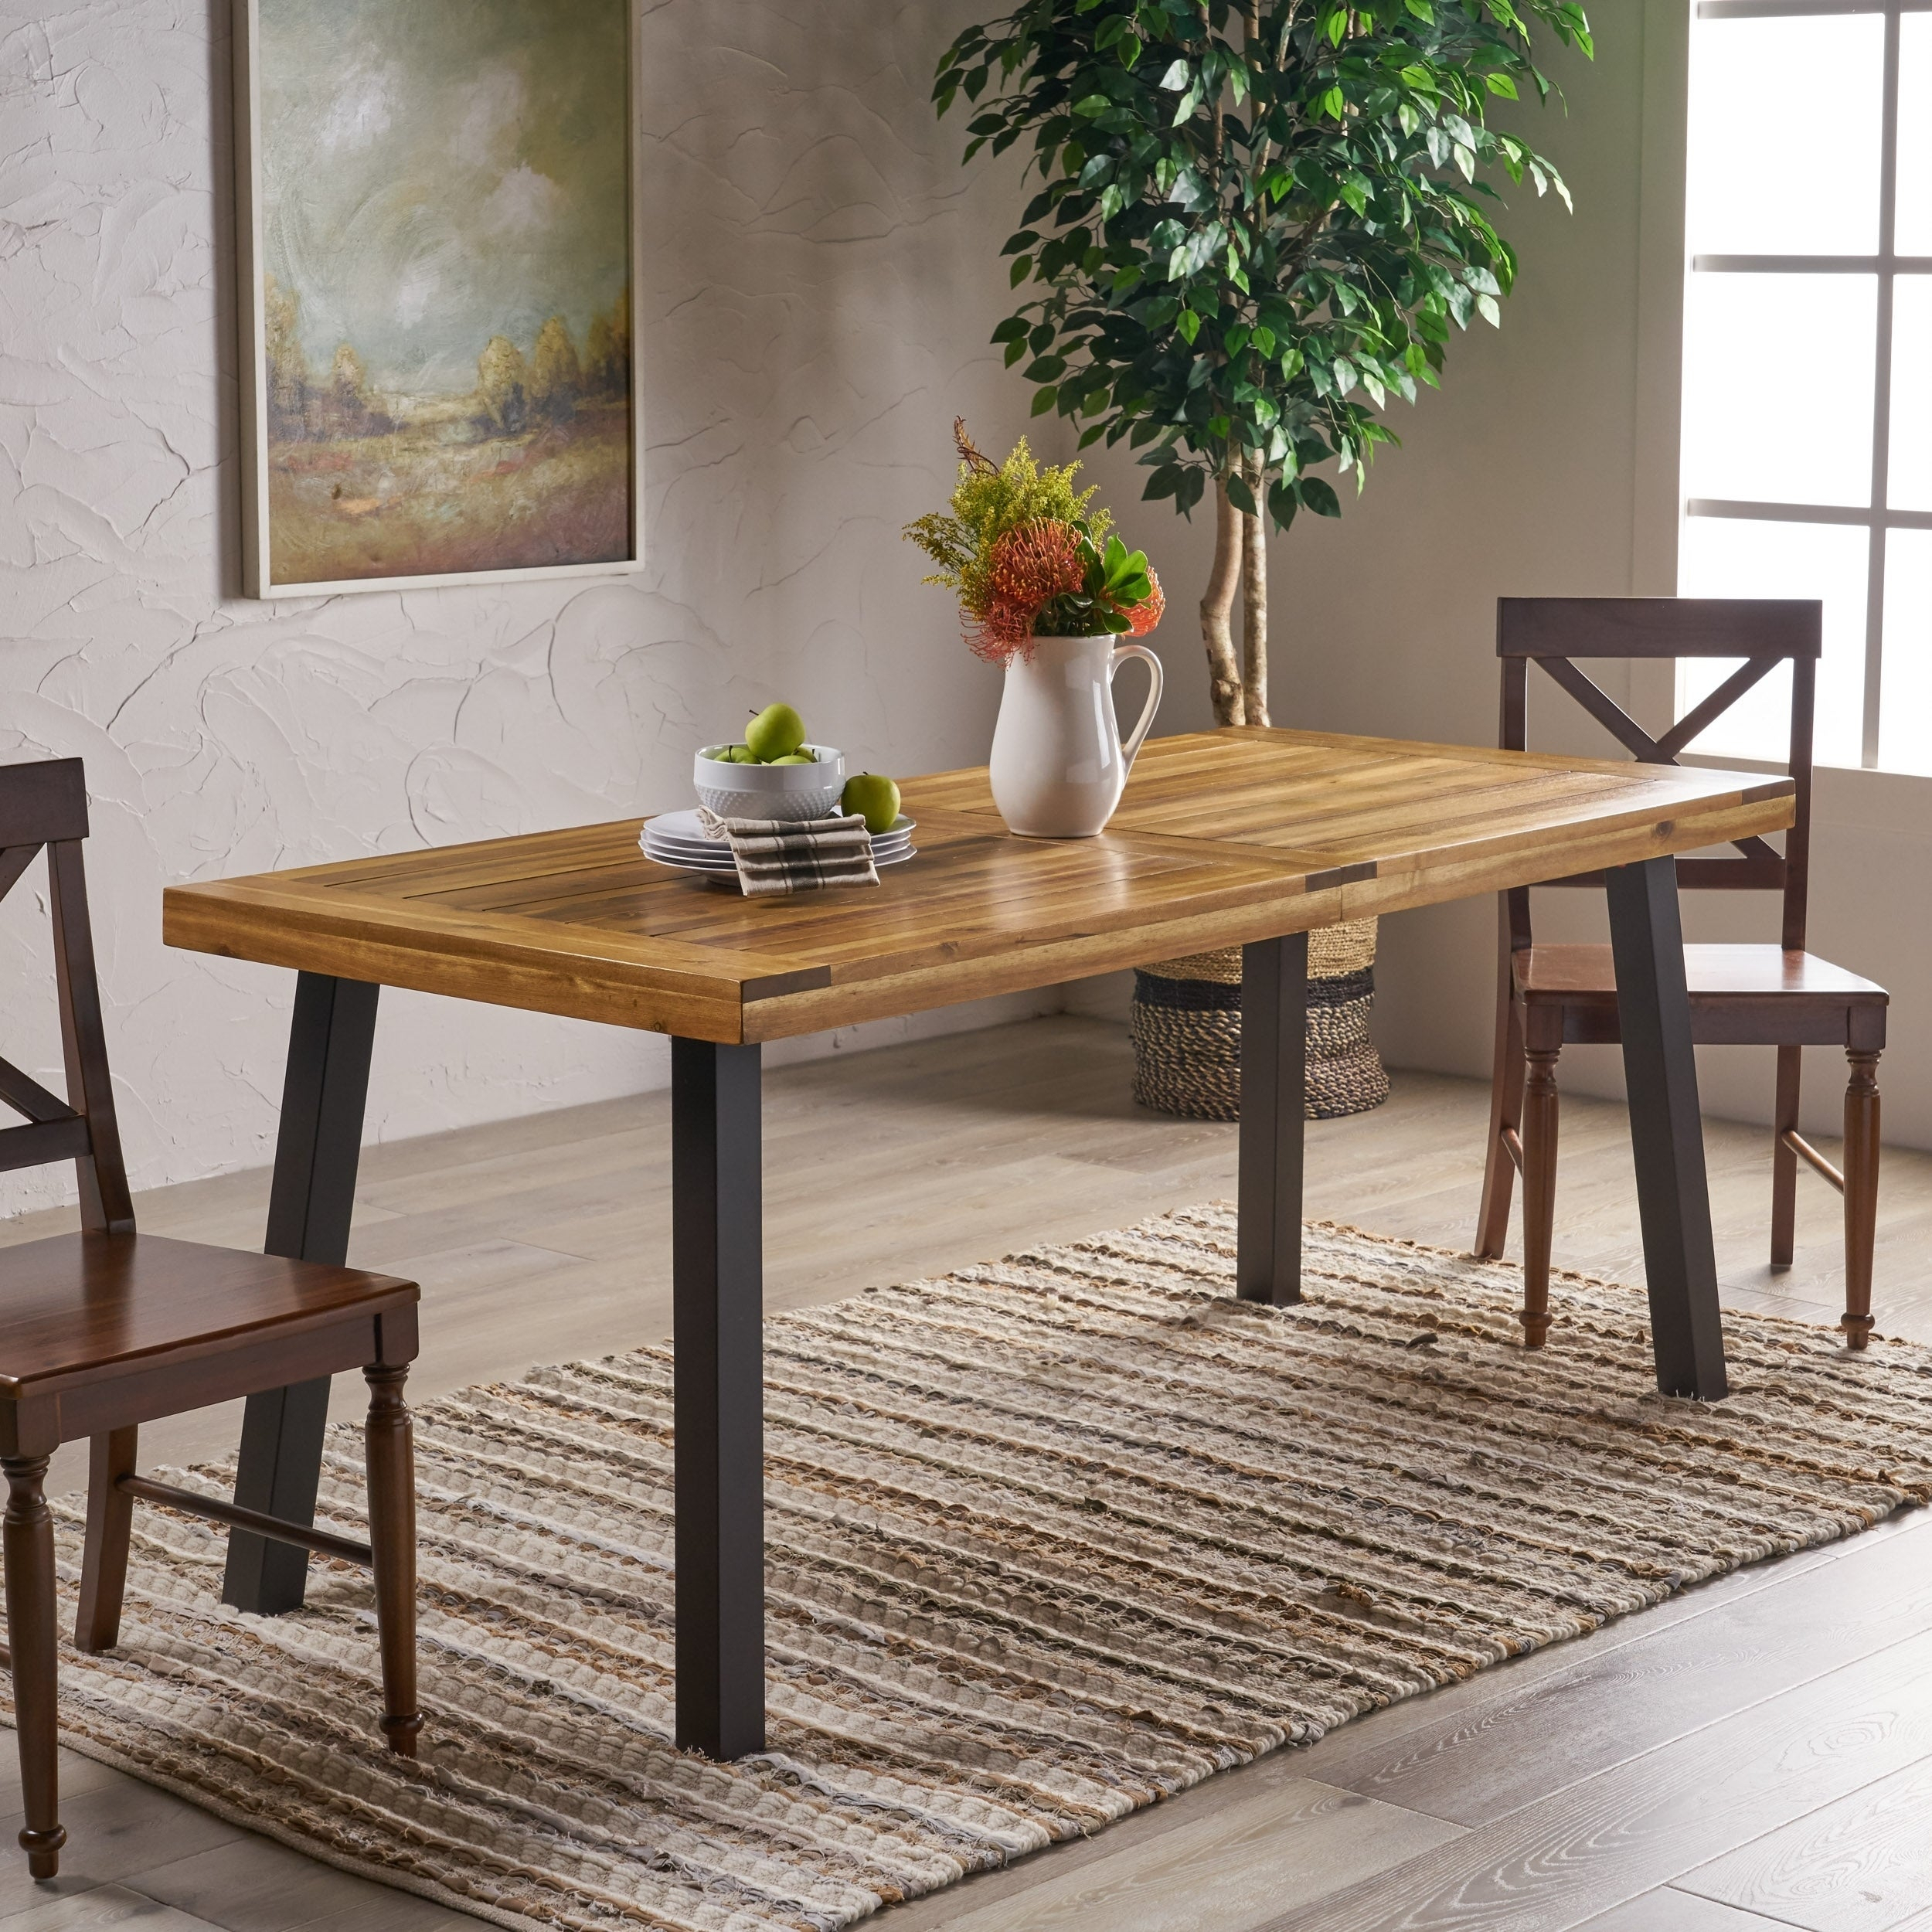 Amazon Kitchen Table – Martinique Inside Most Recent Thalia Dining Tables (View 9 of 25)